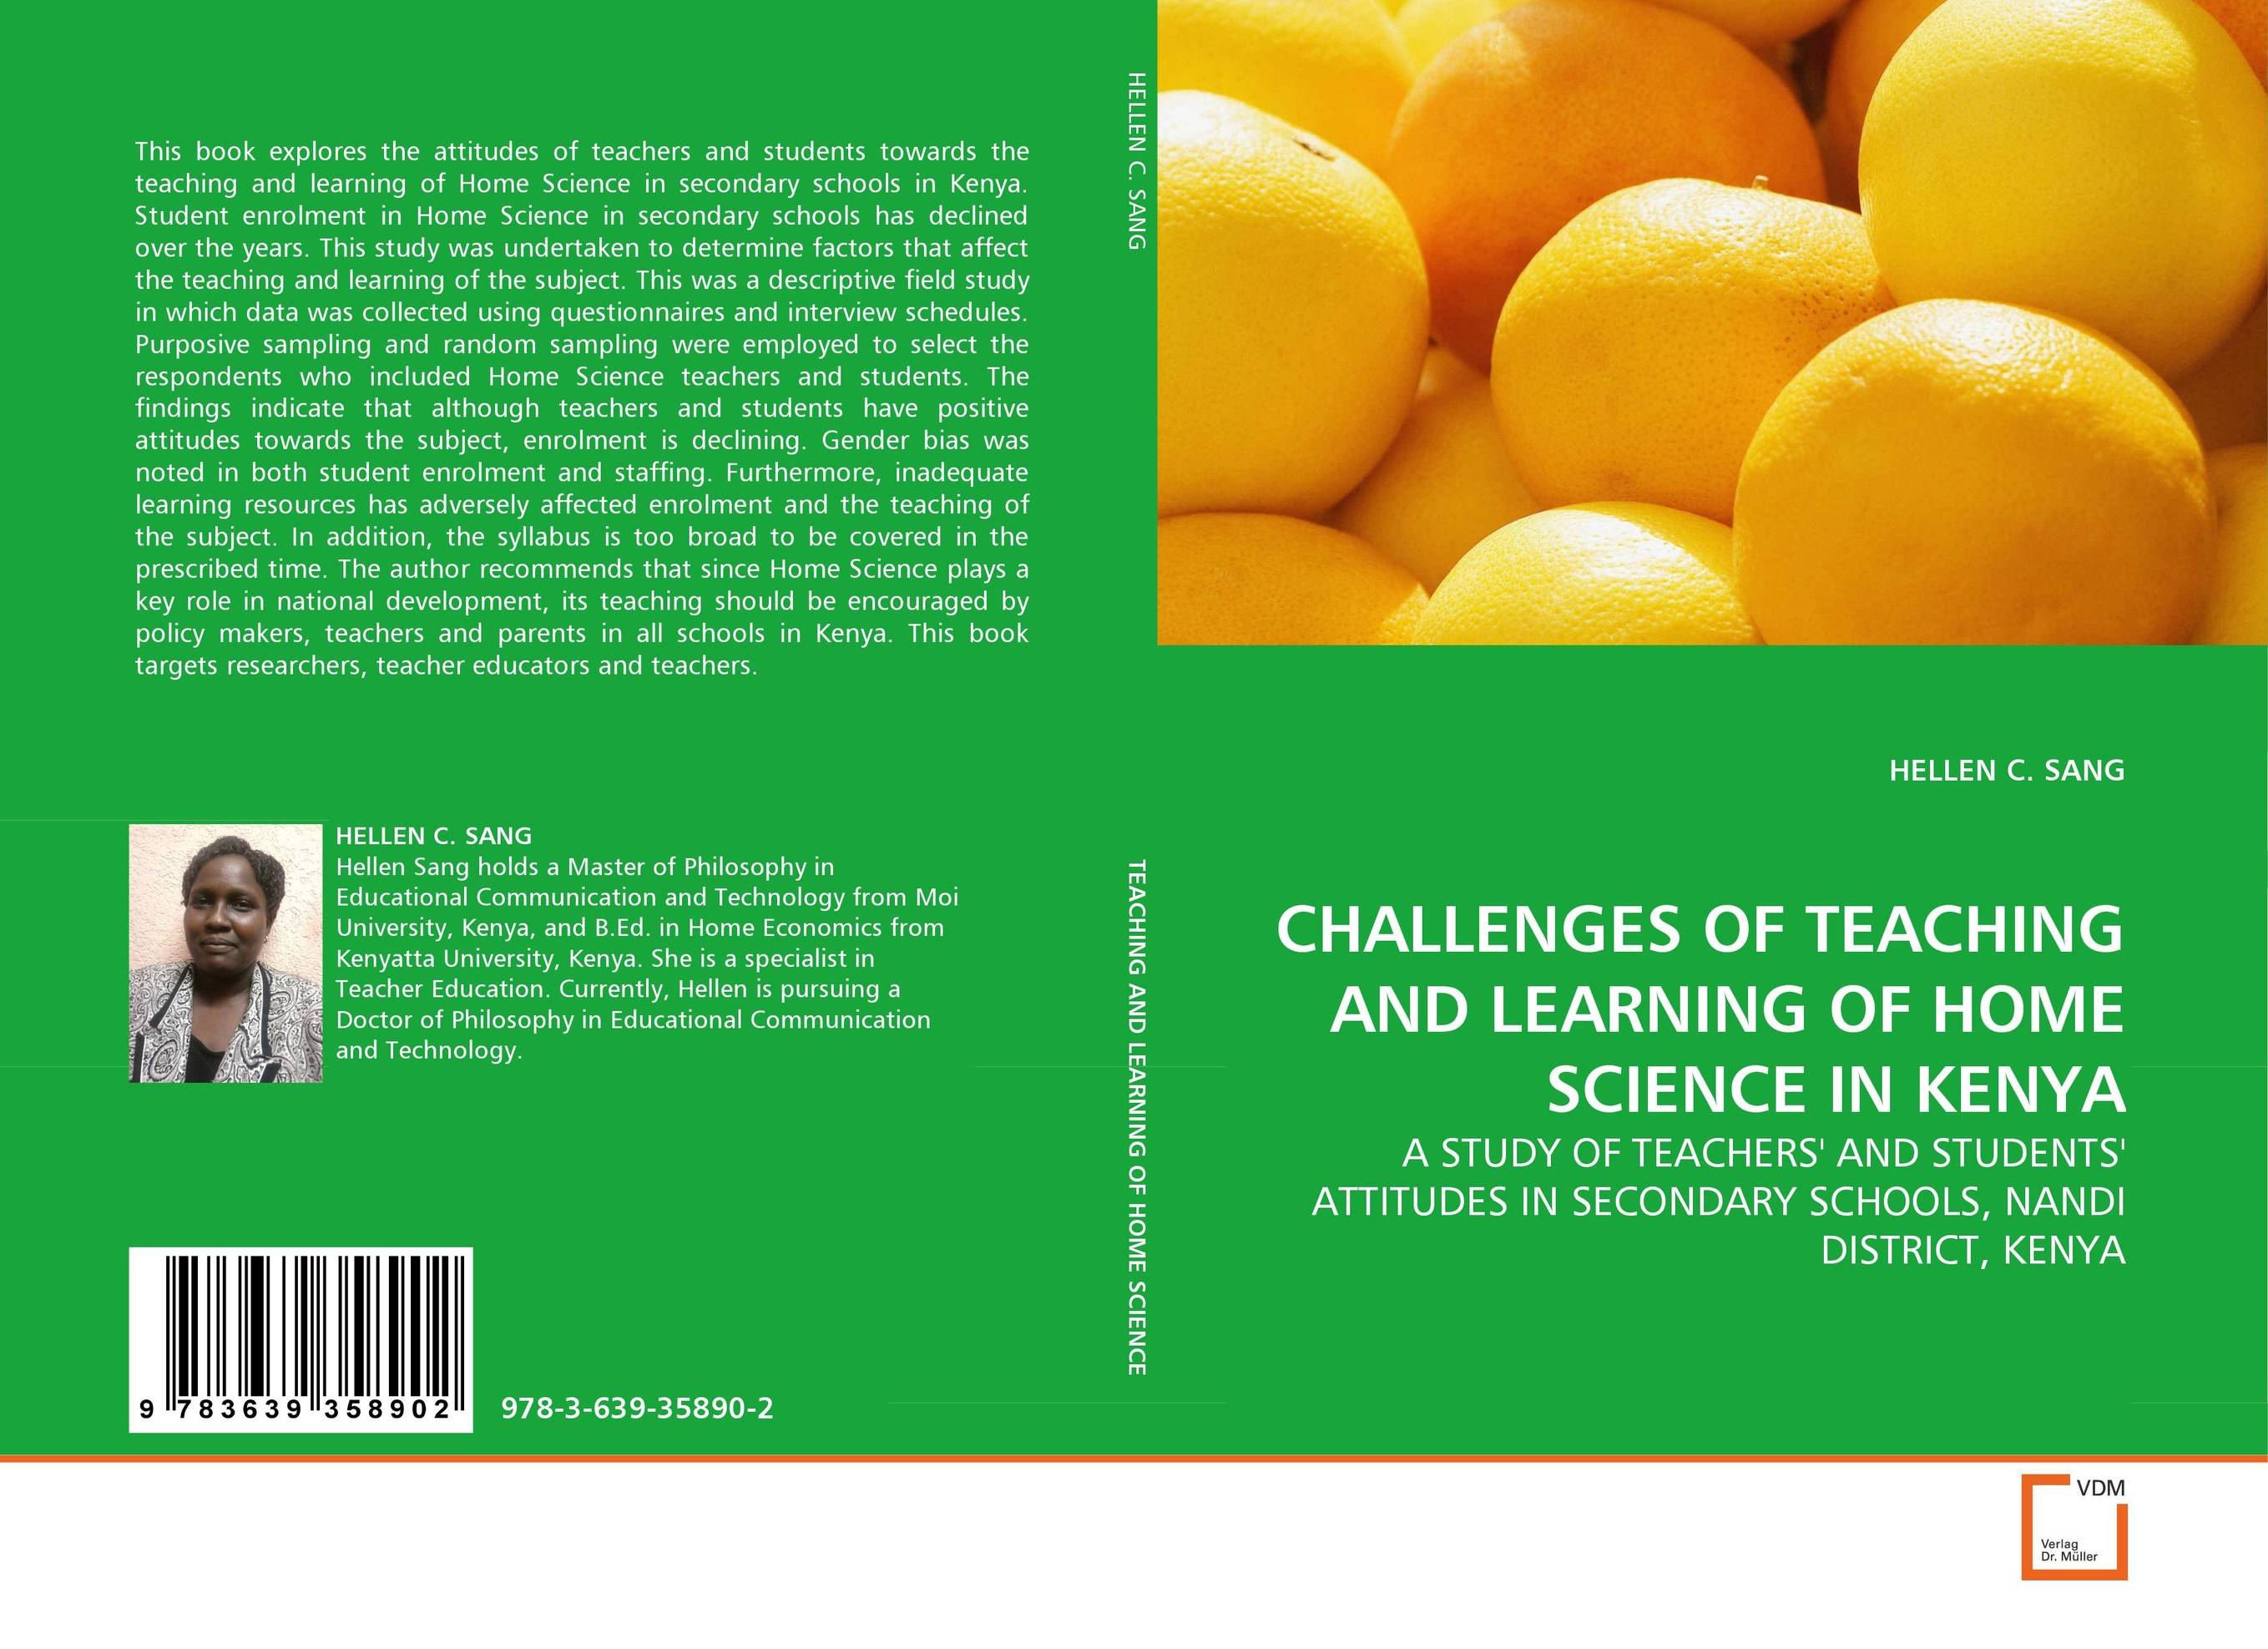 CHALLENGES OF TEACHING AND LEARNING OF HOME SCIENCE IN KENYA use of role plays in teaching english in primary schools